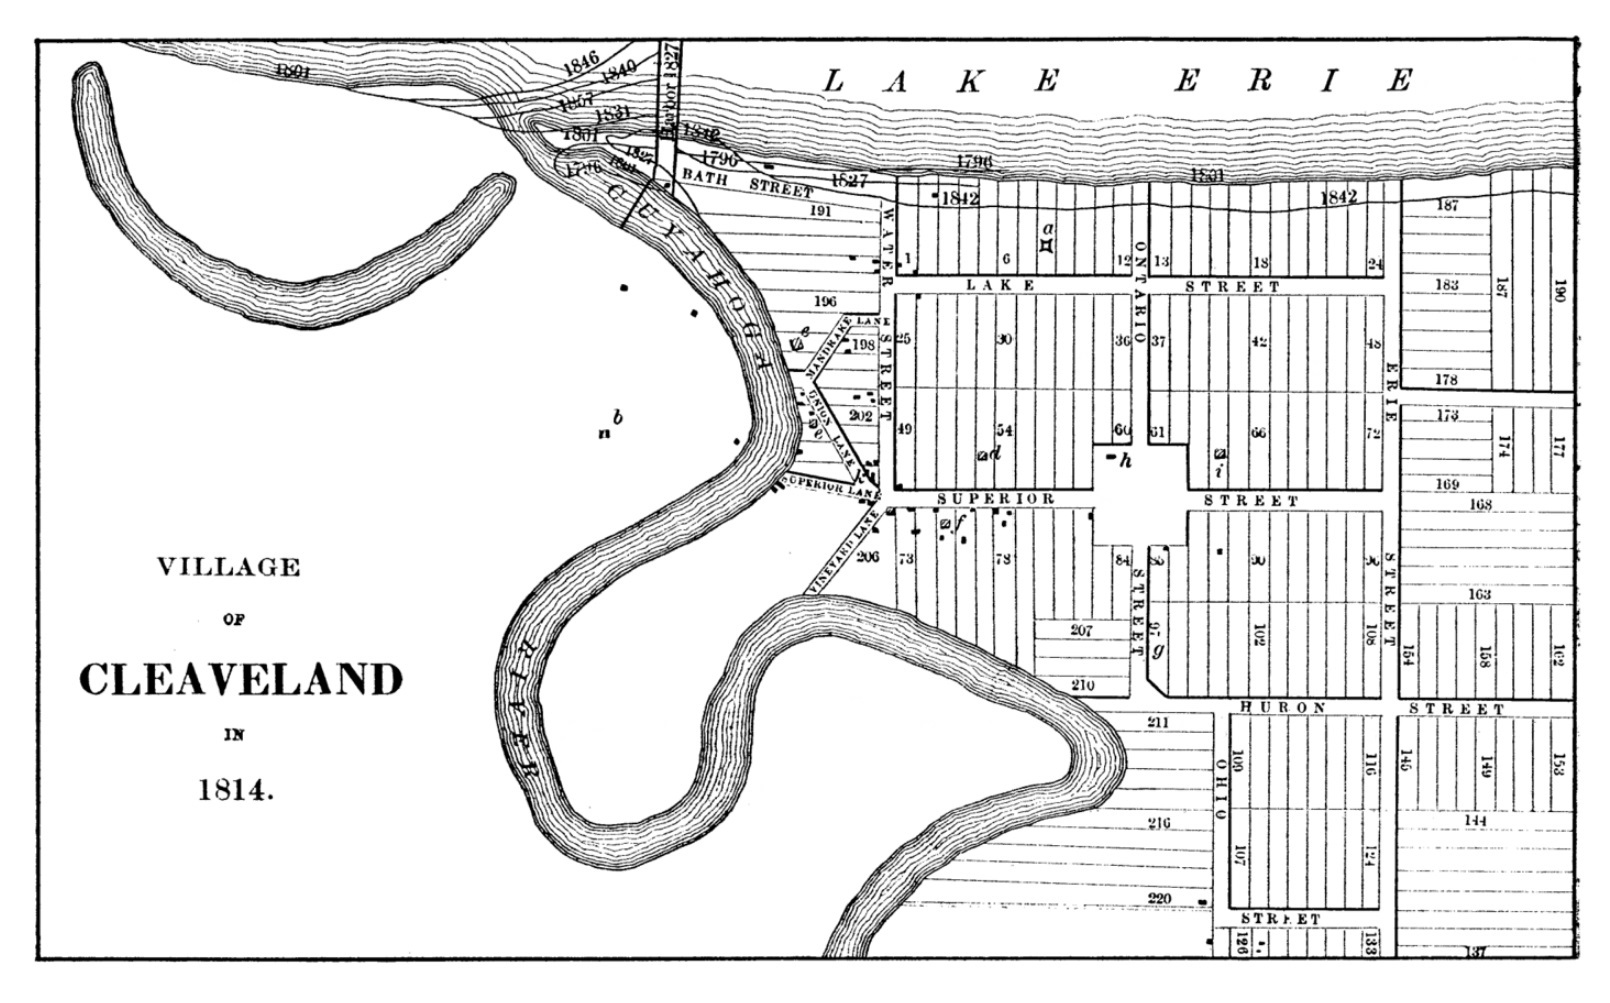 File:Spafford-Kelley map - Cleveland 1814.jpg - Wikimedia ... on geneva map, cleveland cavaliers, san diego map, state map, ohio map, detroit map, cleveland browns, blairsville ga map, cincinnati map, cuyahoga county map, great lakes map, case western reserve university, florida map, cleveland indians, pittsburgh map, galveston map, atlanta map, kansas city map, clevland on a map, miami map, st. louis map, lake erie, rock and roll hall of fame, pennsylvania map, tampa map, massachusetts map,